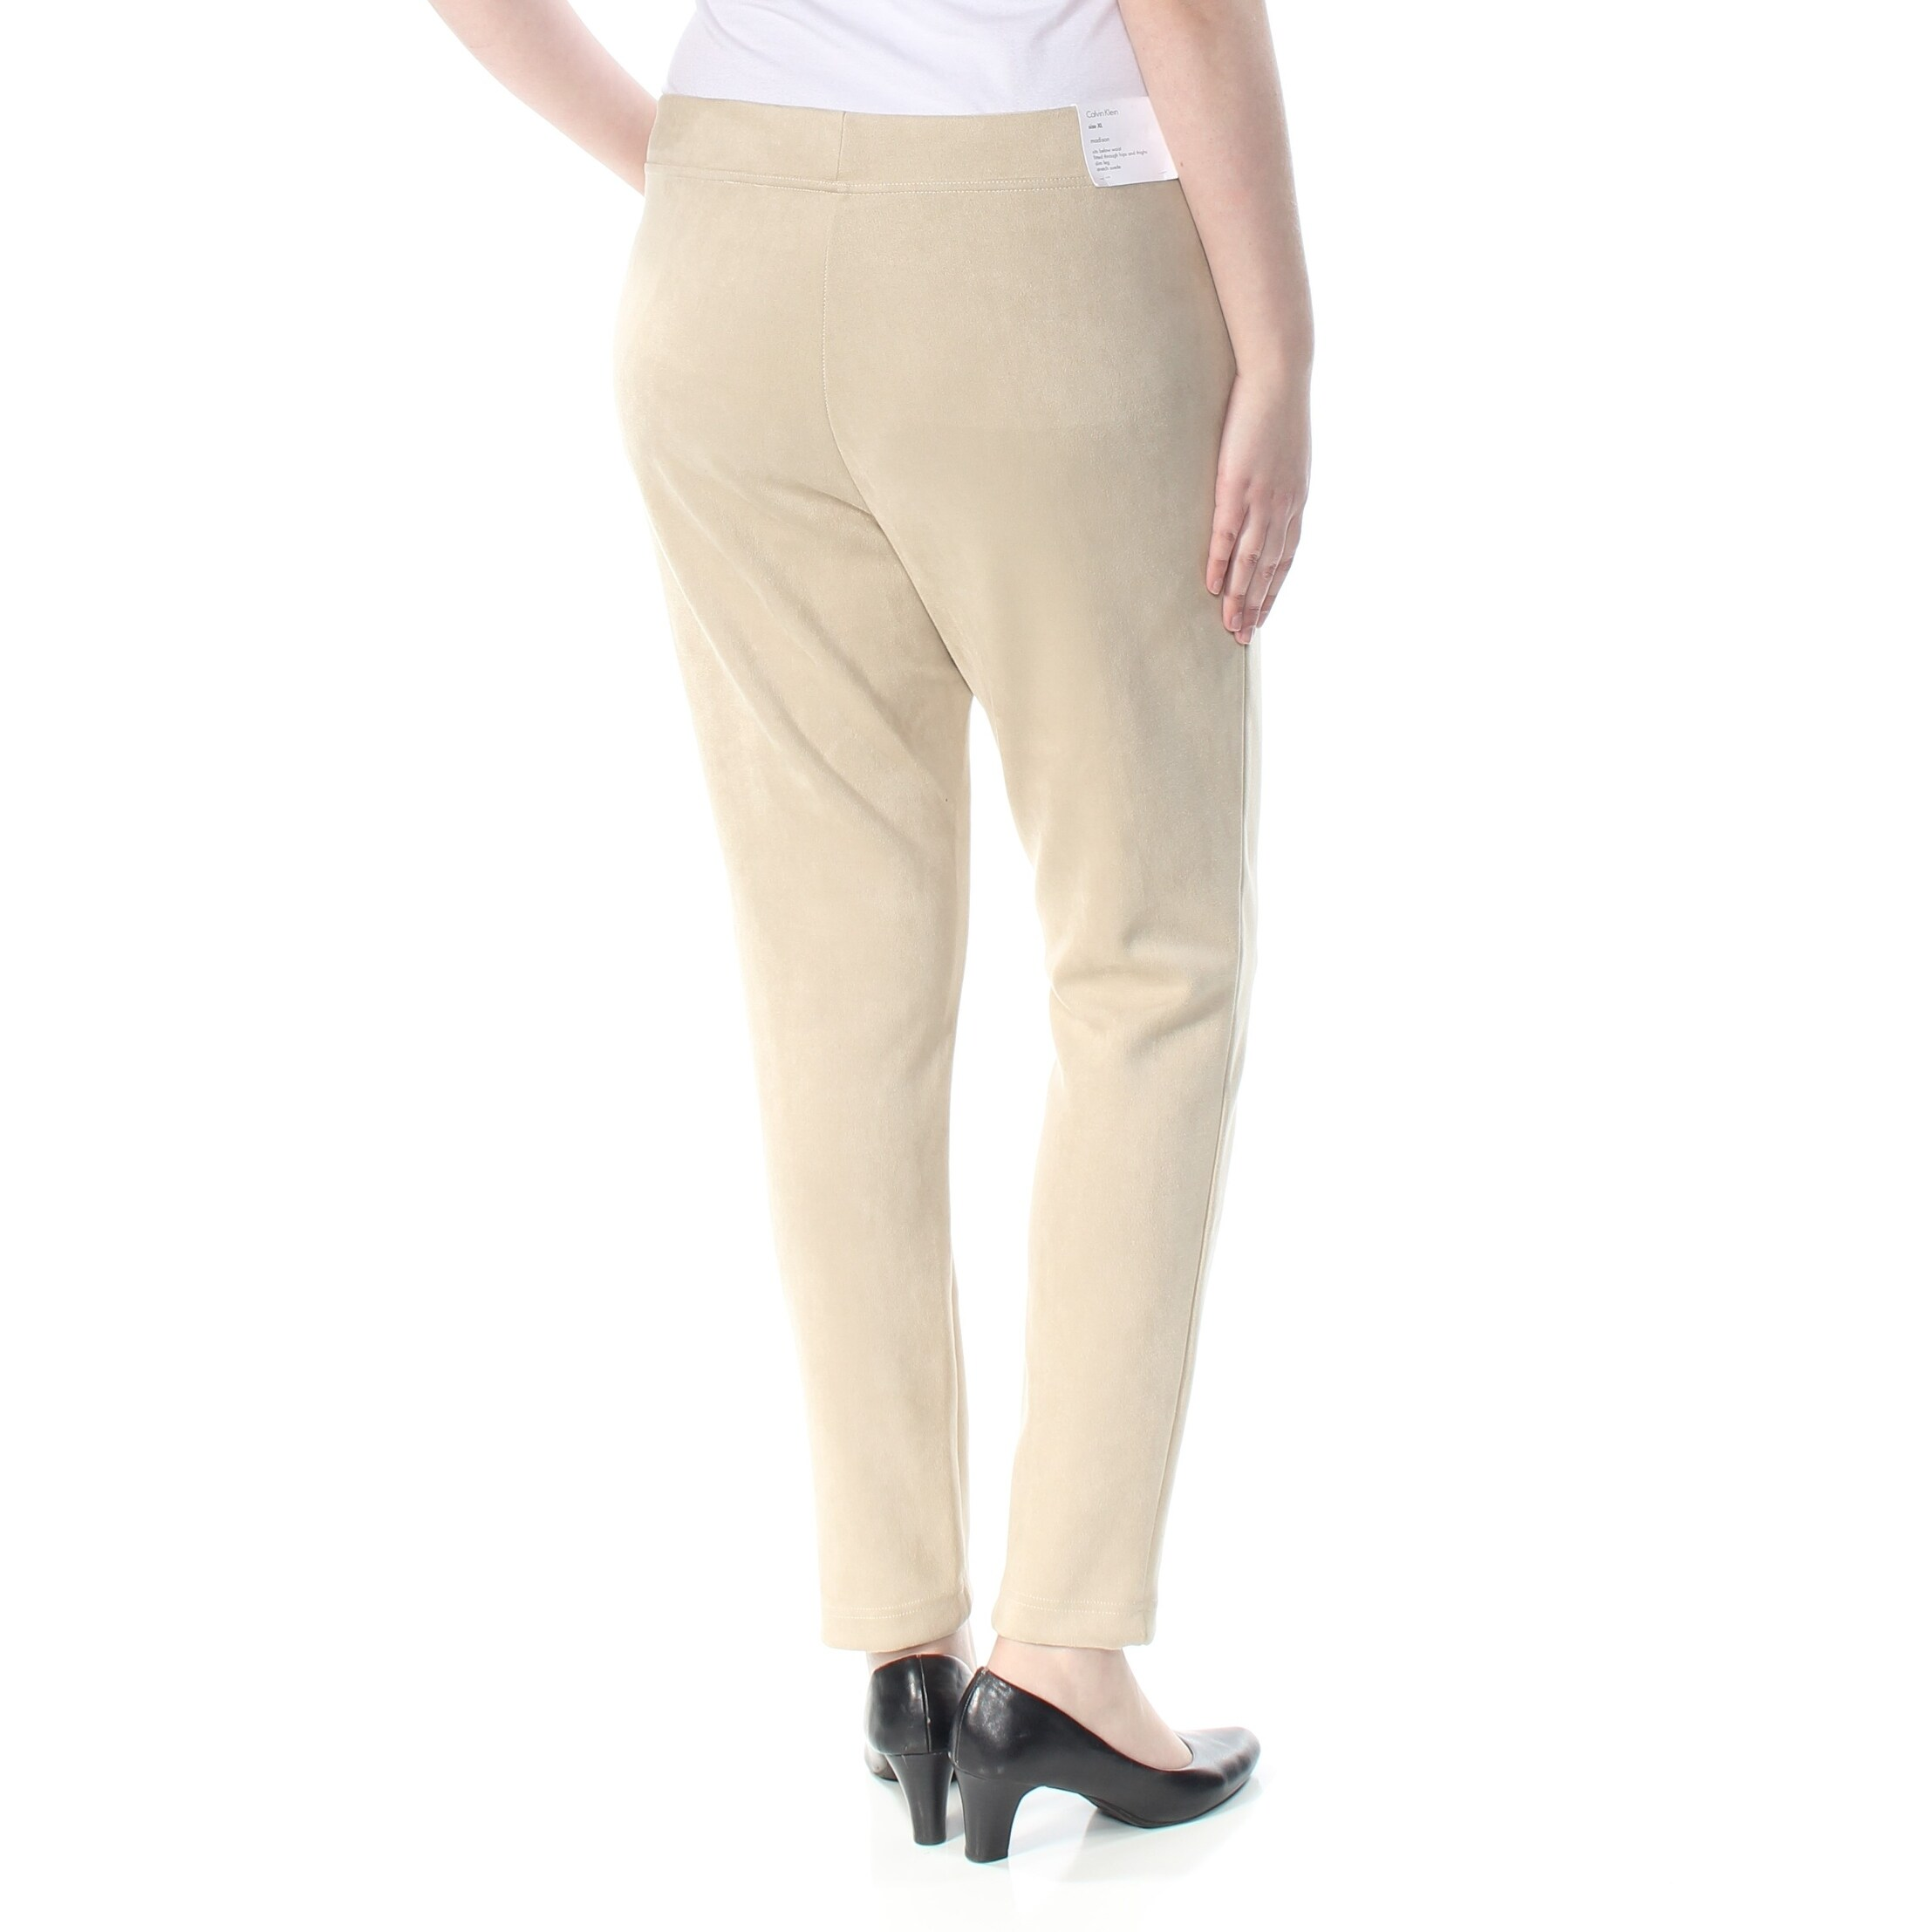 12f4e0f28ddf4e Shop CALVIN KLEIN Womens Beige Faux Suede Leggings Size: XL - Free Shipping  Today - Overstock - 28373287